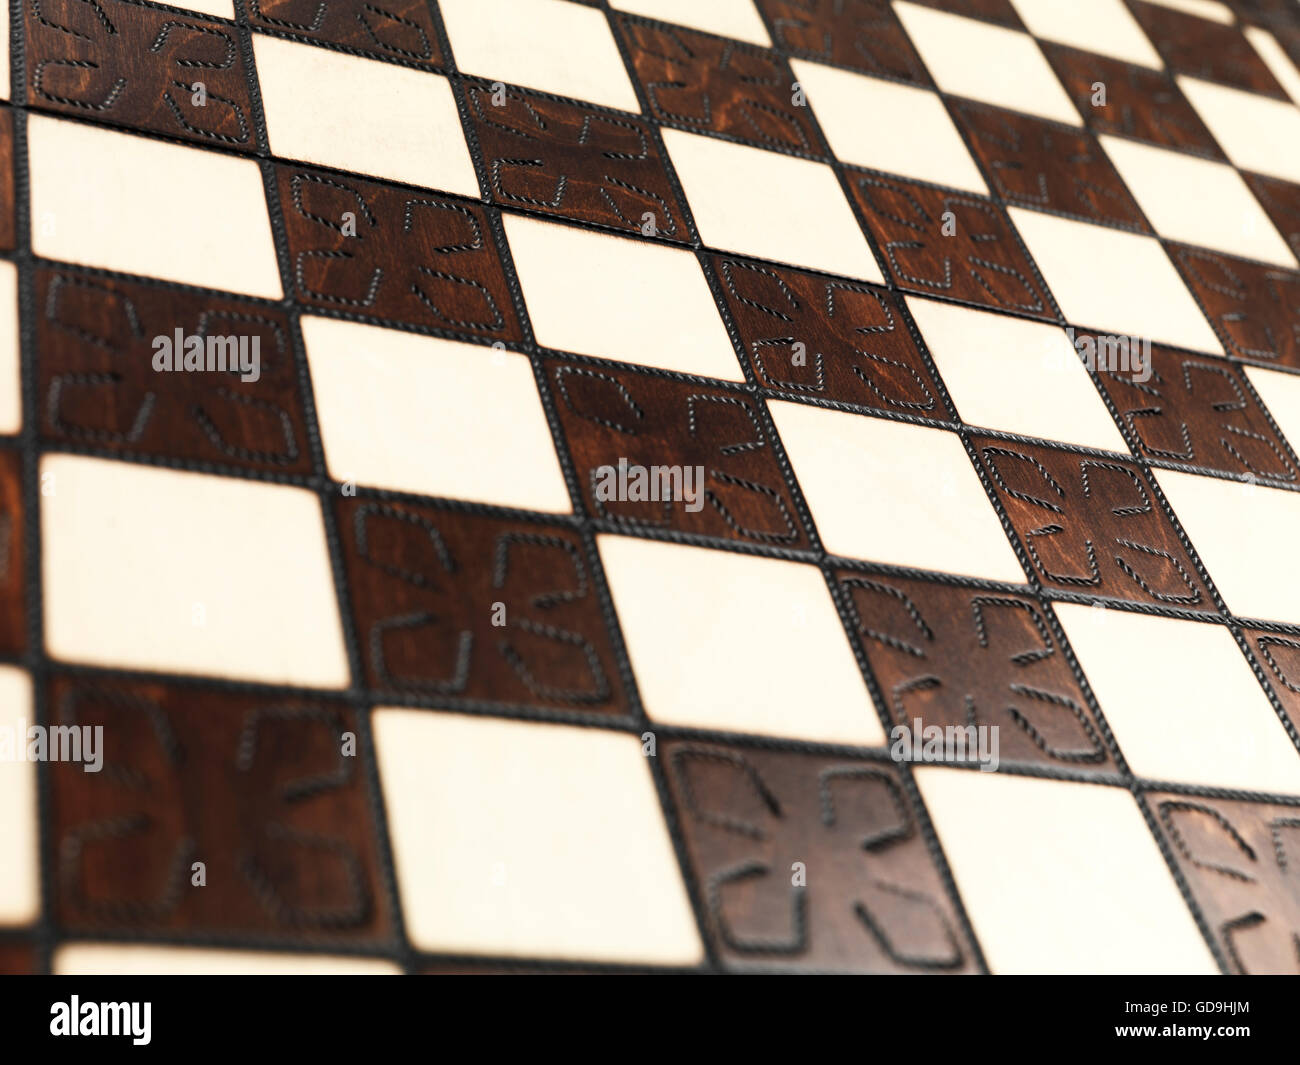 Closeup of a chessboard - Stock Image